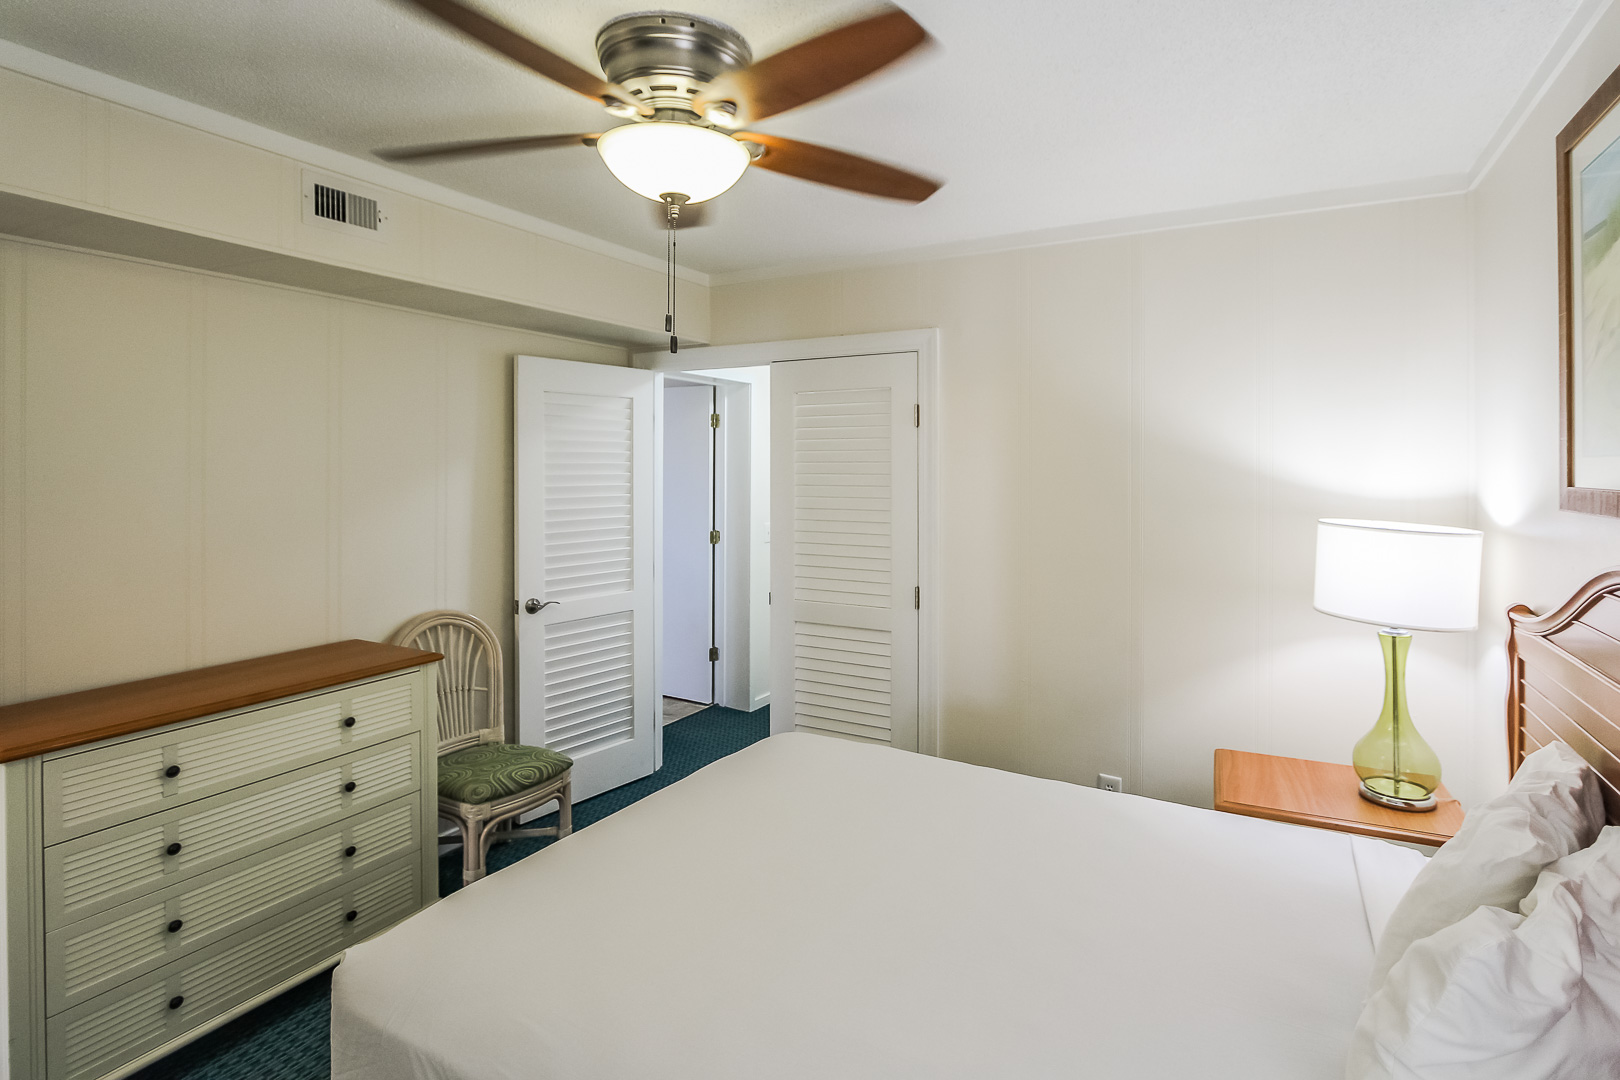 A standard master bedroom at VRI's A Place at the Beach III in North Carolina